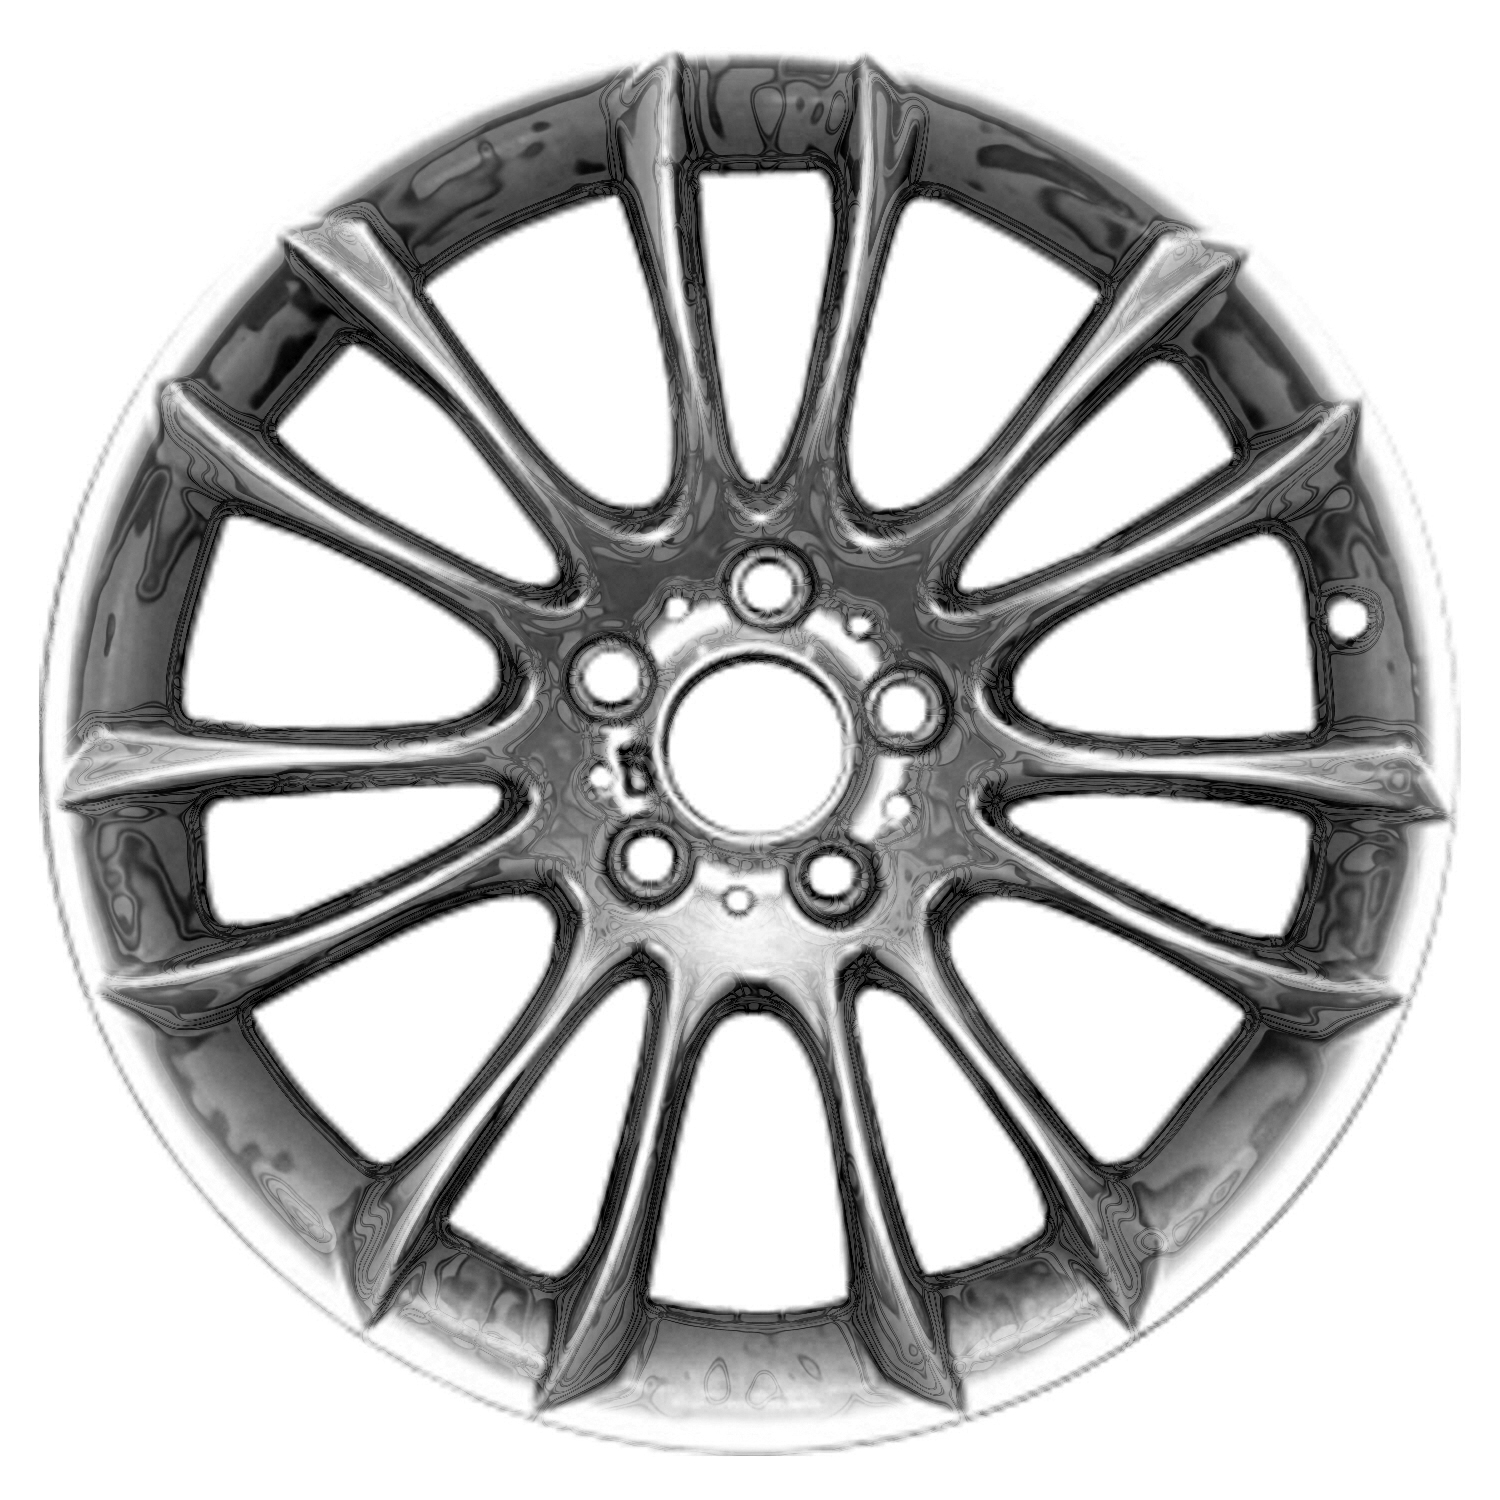 Compatible Reconditioned Front 19 X 8 5 7 V Spokes Chrome Aluminium